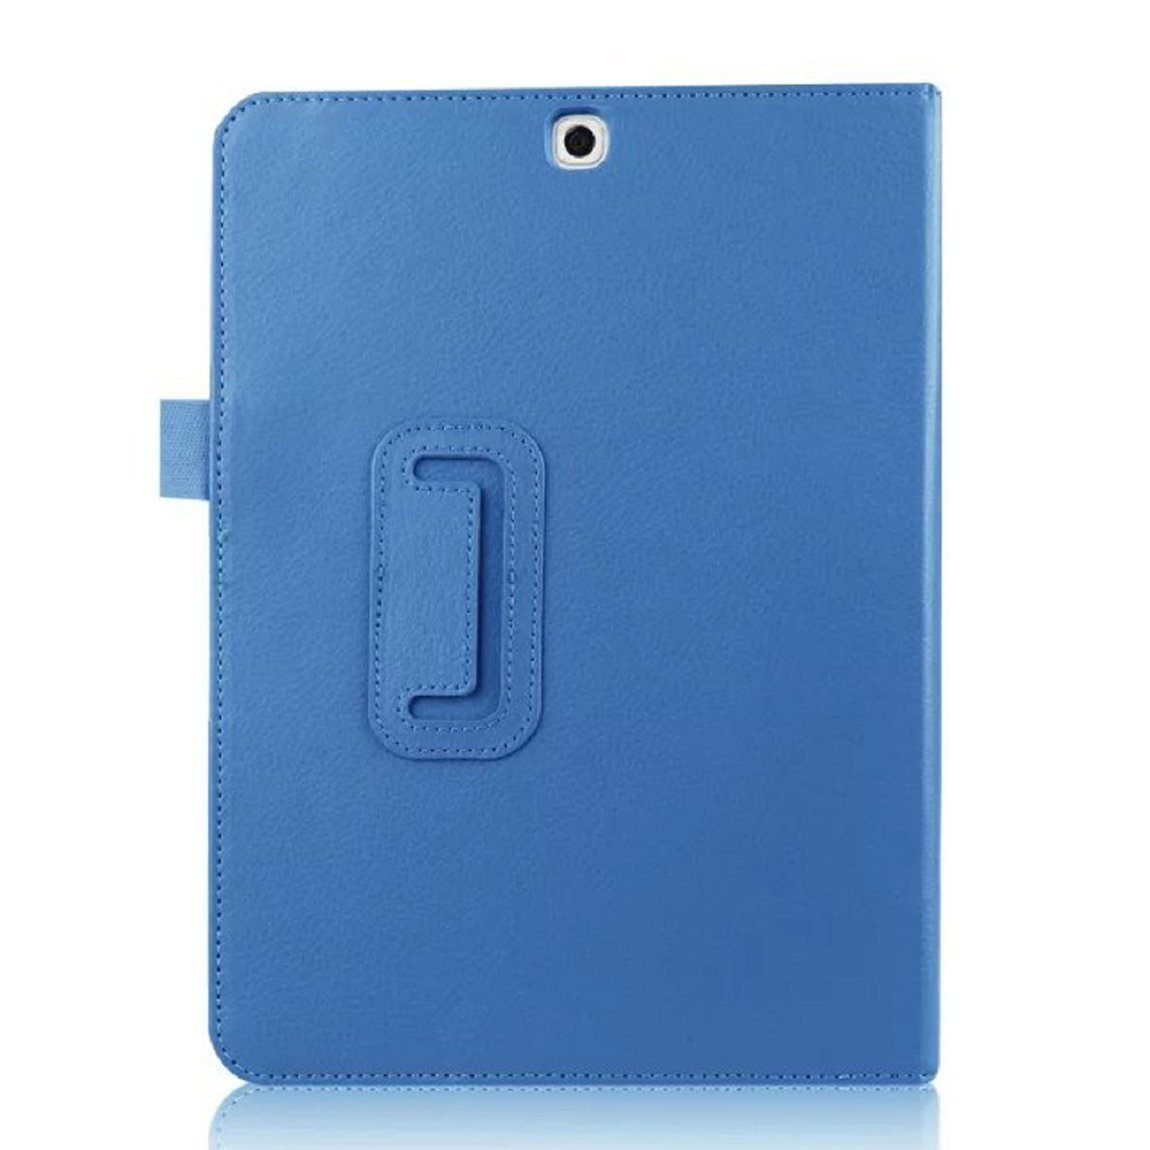 Leather Stand Flip Case Cover For Samsung Galaxy Tab S2 9.7 T815 (Light Blue)